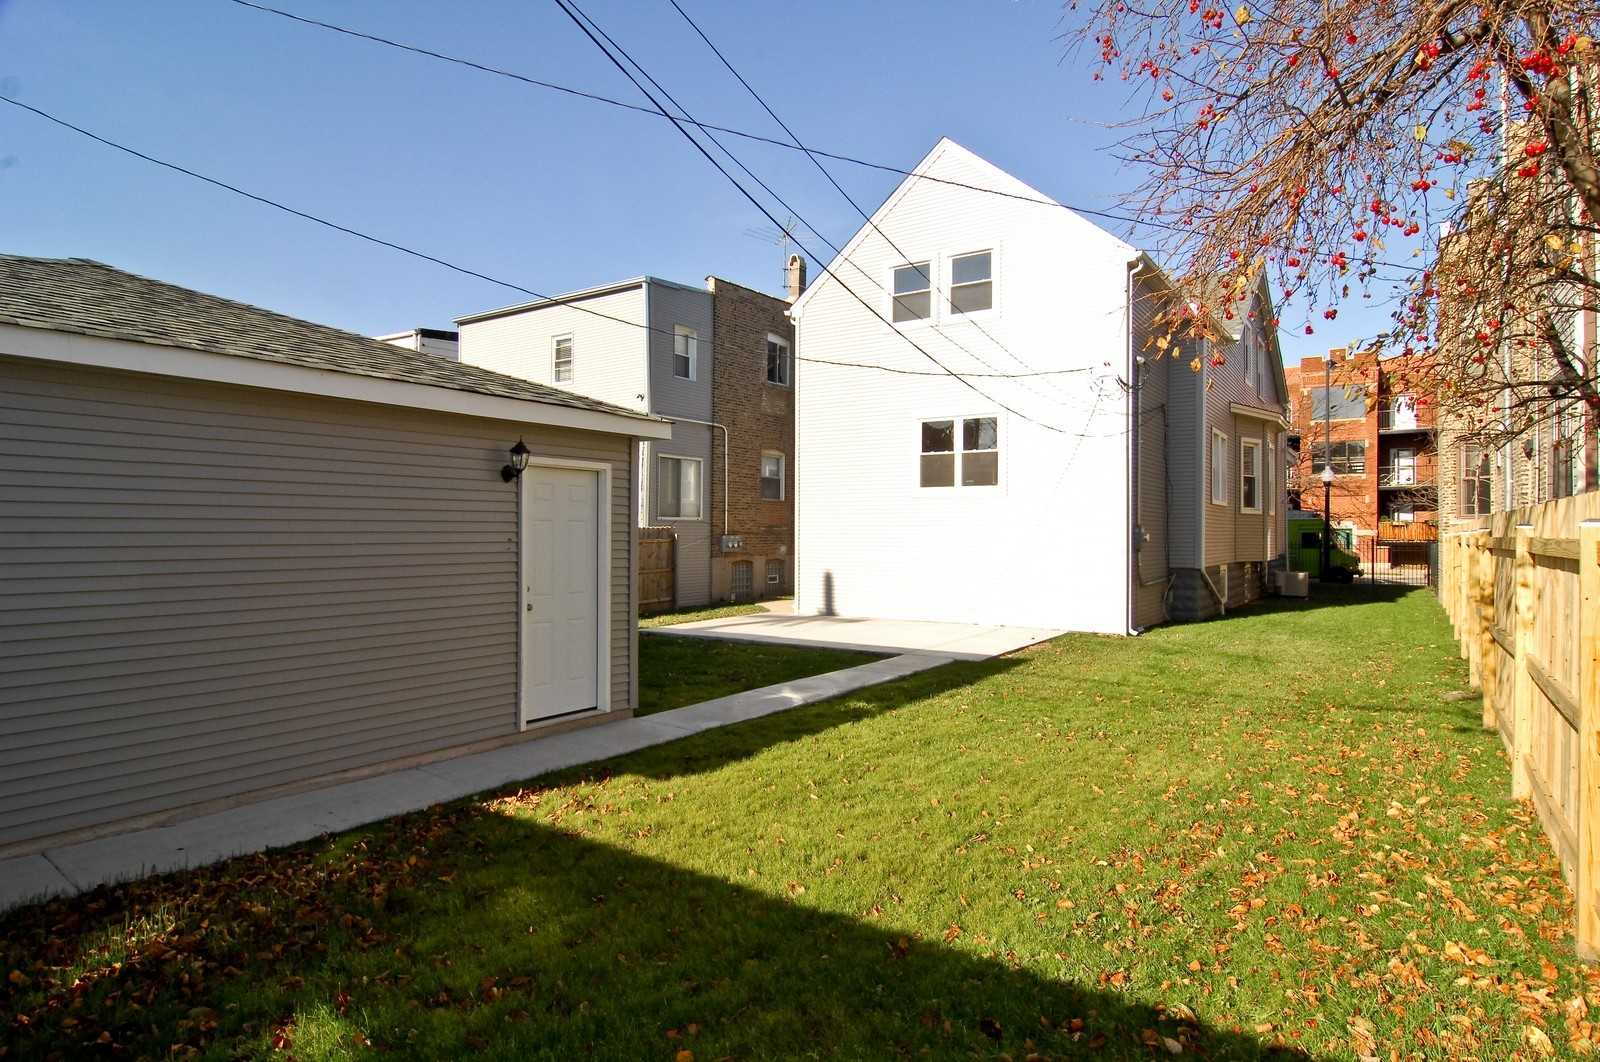 Real Estate Photography - 3743 W Wrightwood, Chicago, IL, 60647 - Rear View